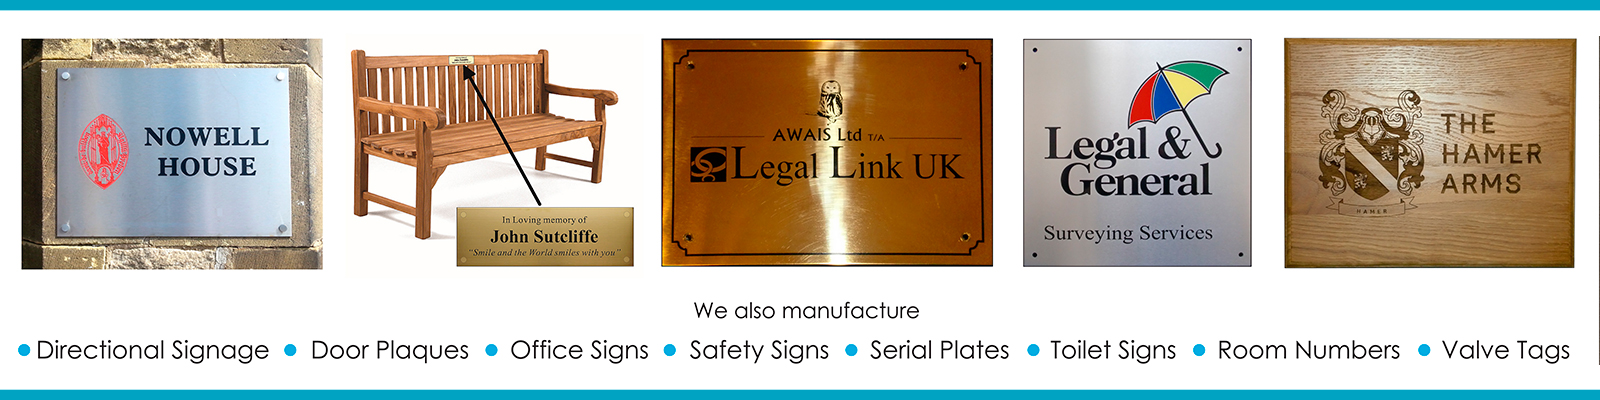 Impressions Engraving - Directional Signage, Door Plaques, Office Signs, Safety Signs, Serial Plates, Toilet Signs, Room Numbers, Valve Tags